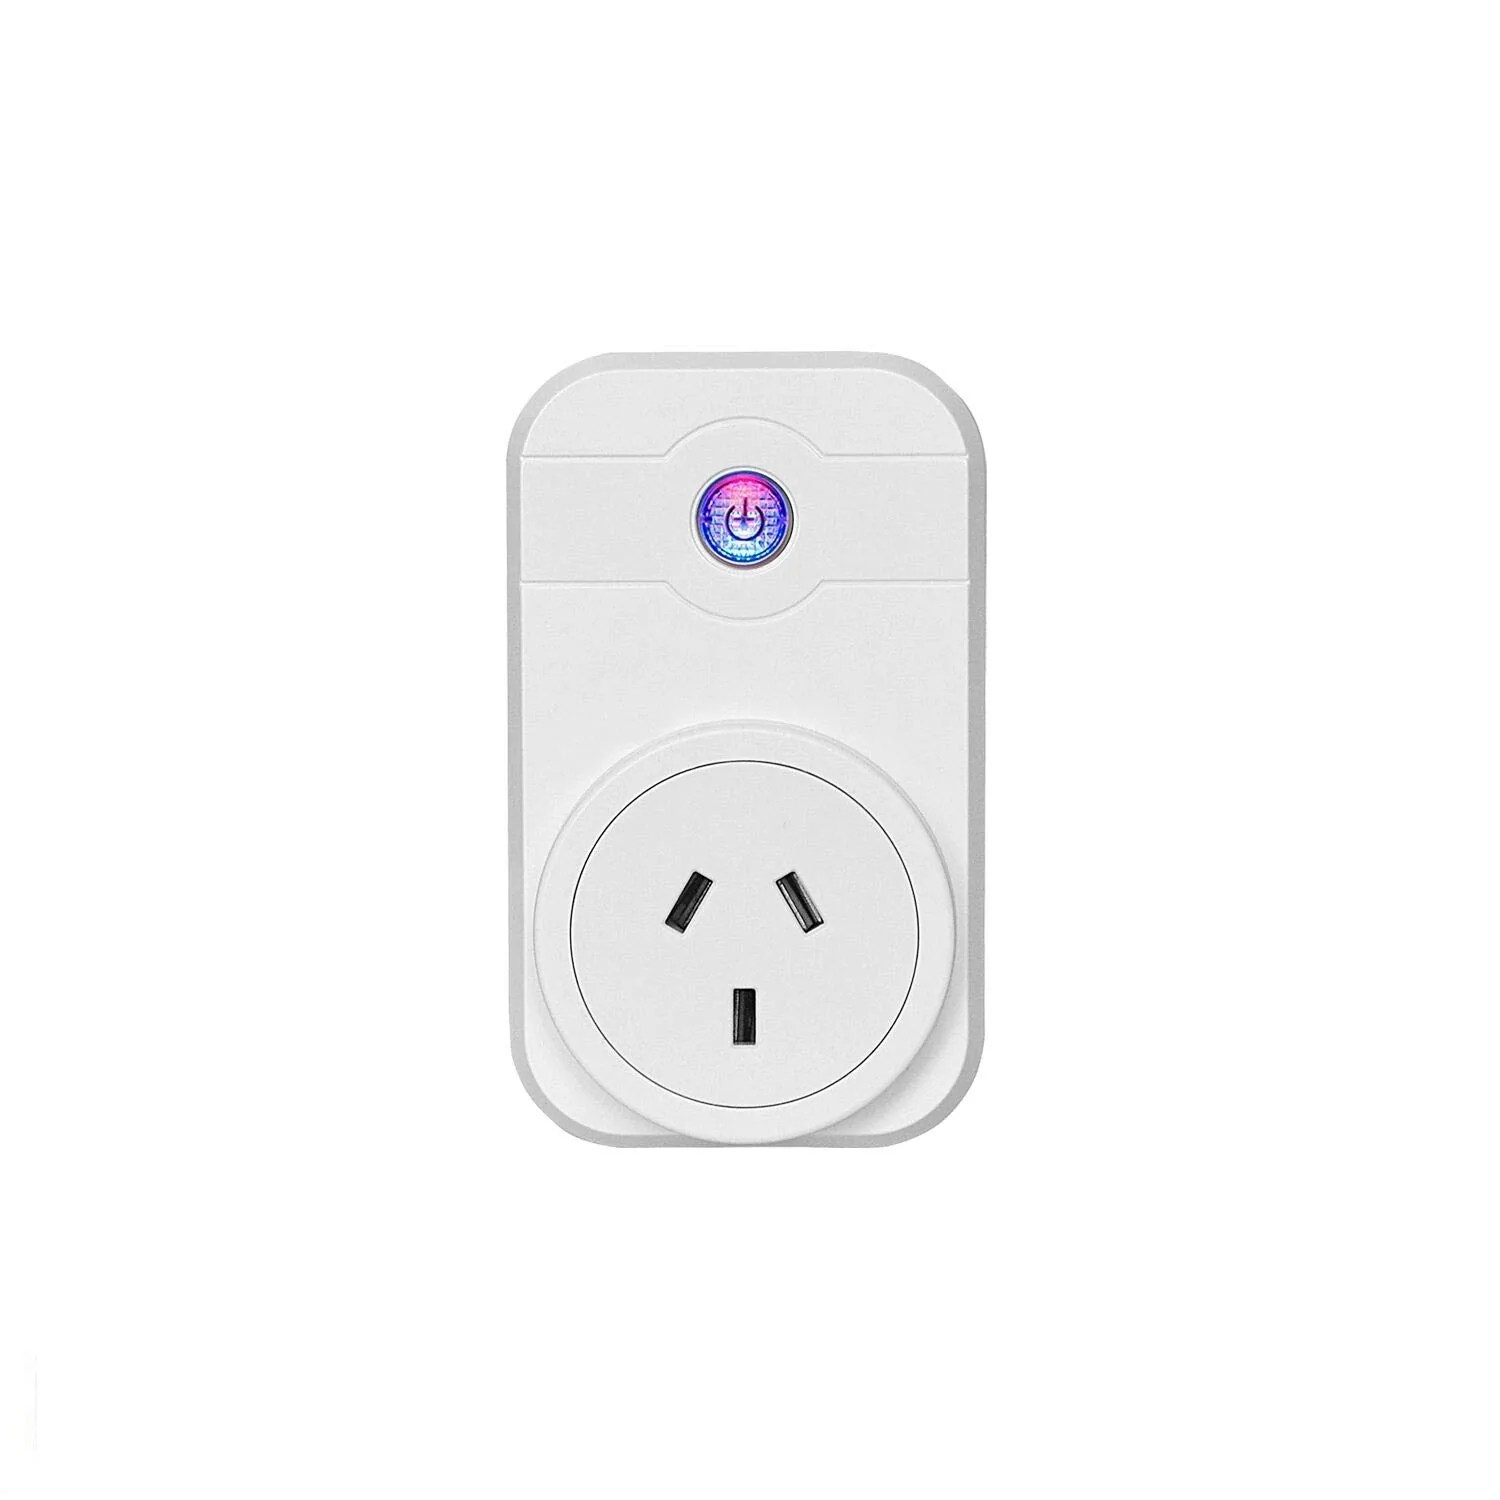 Australia Power Socket Smart Plug Wi Fi Enabled Mini Smart Socket Compatible With Amazon Alexa Google Home Remote Control For Australia